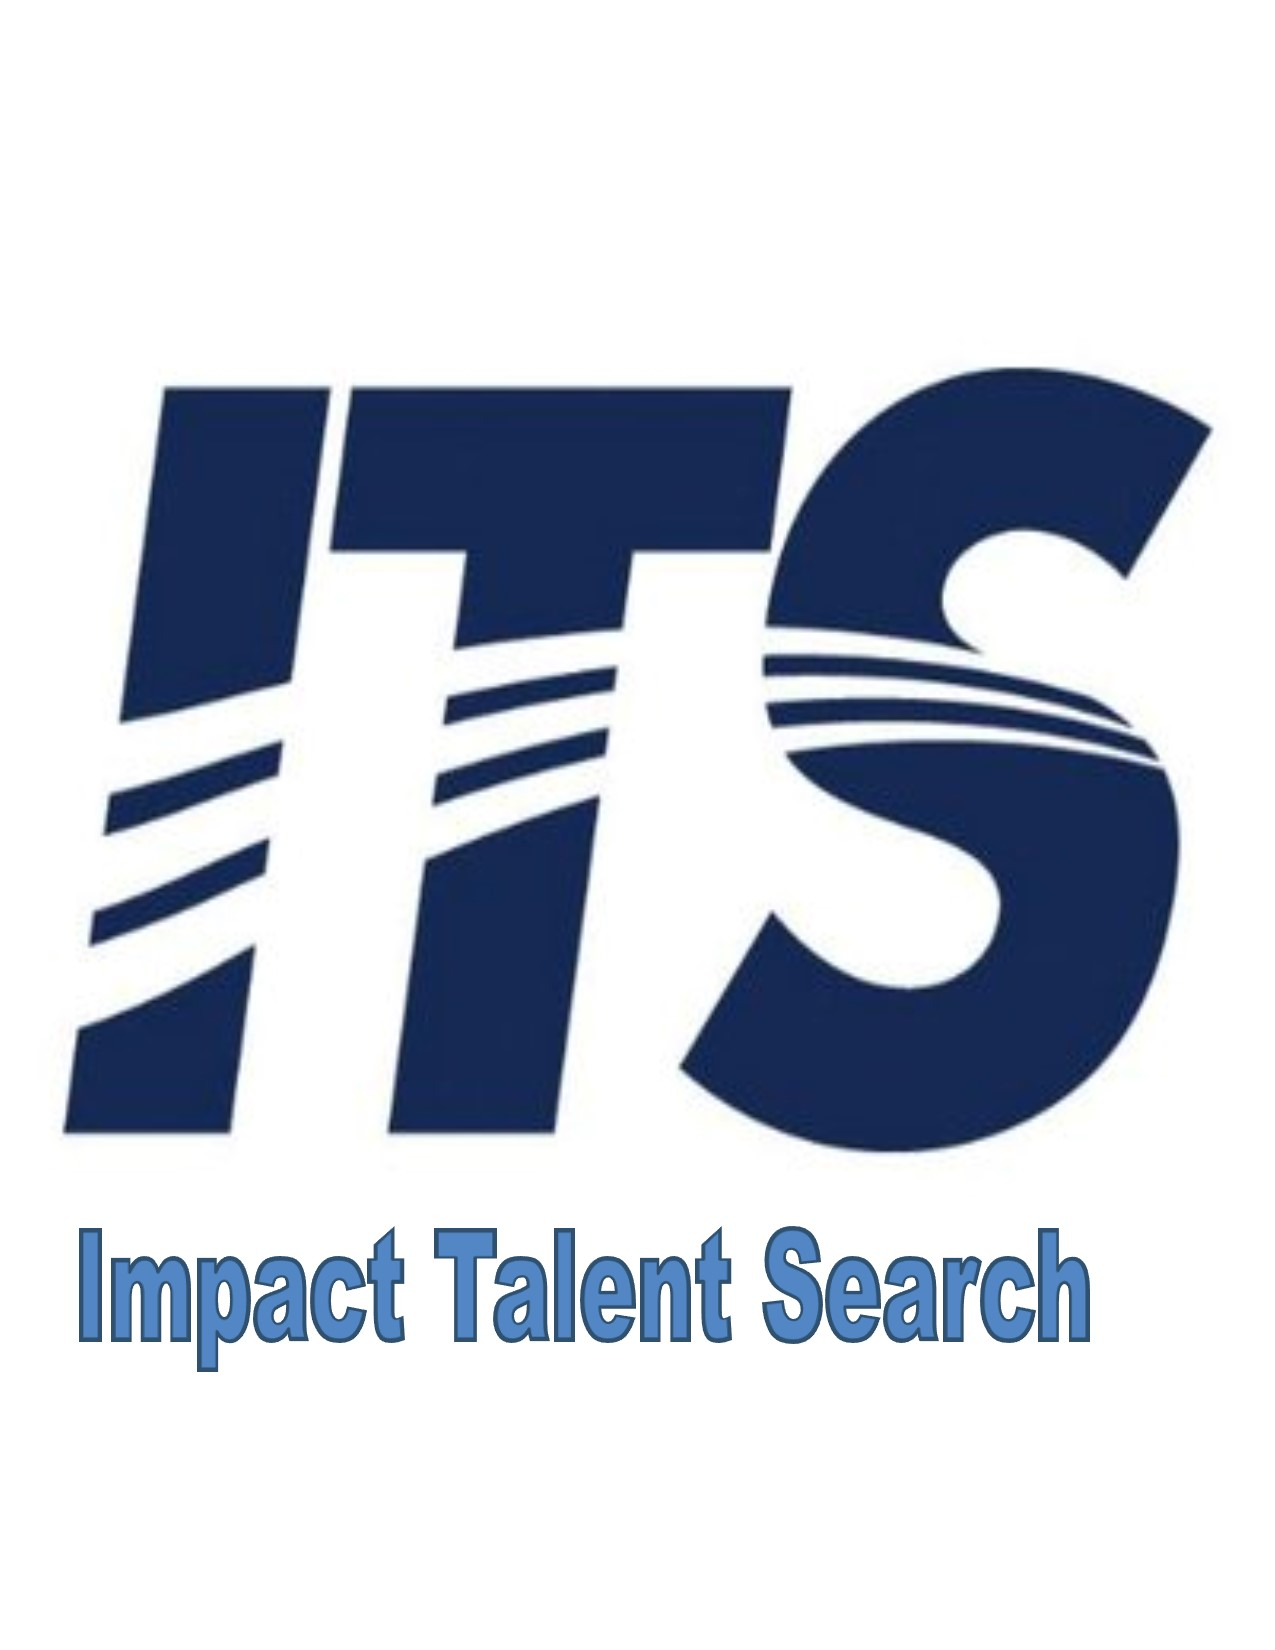 impact-talent-search-logo-image